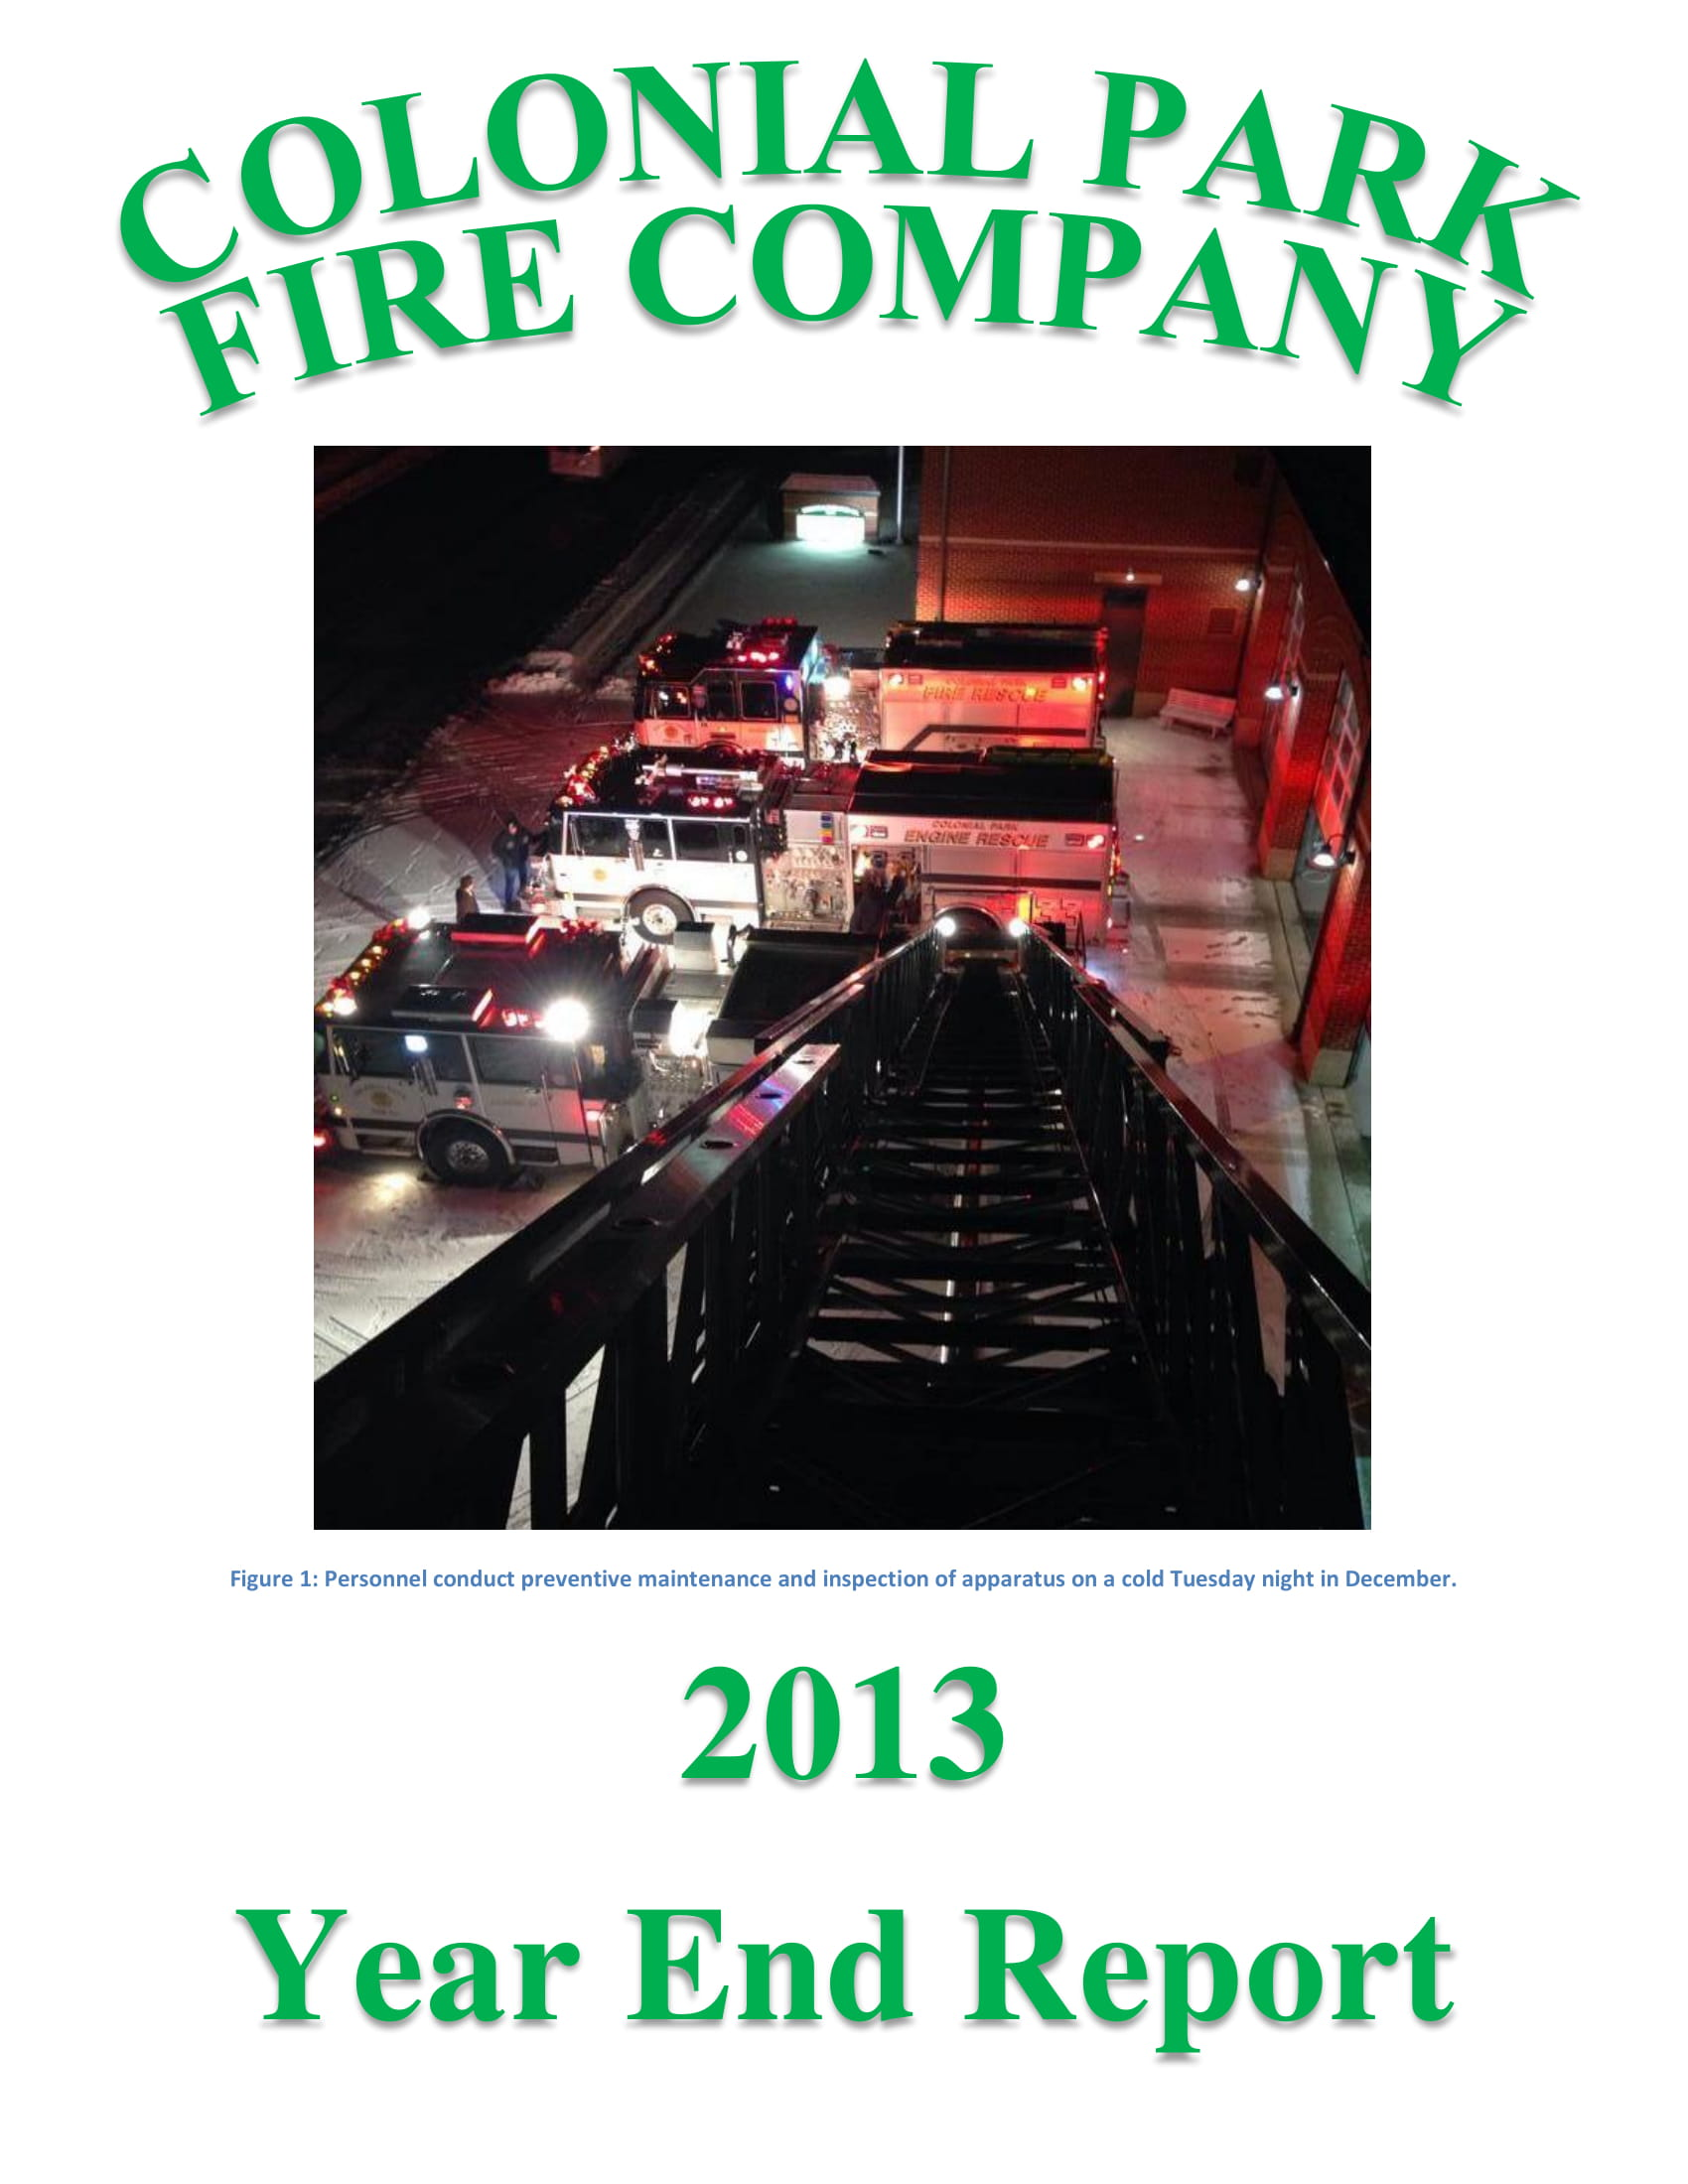 Fire Company Year End Report Example